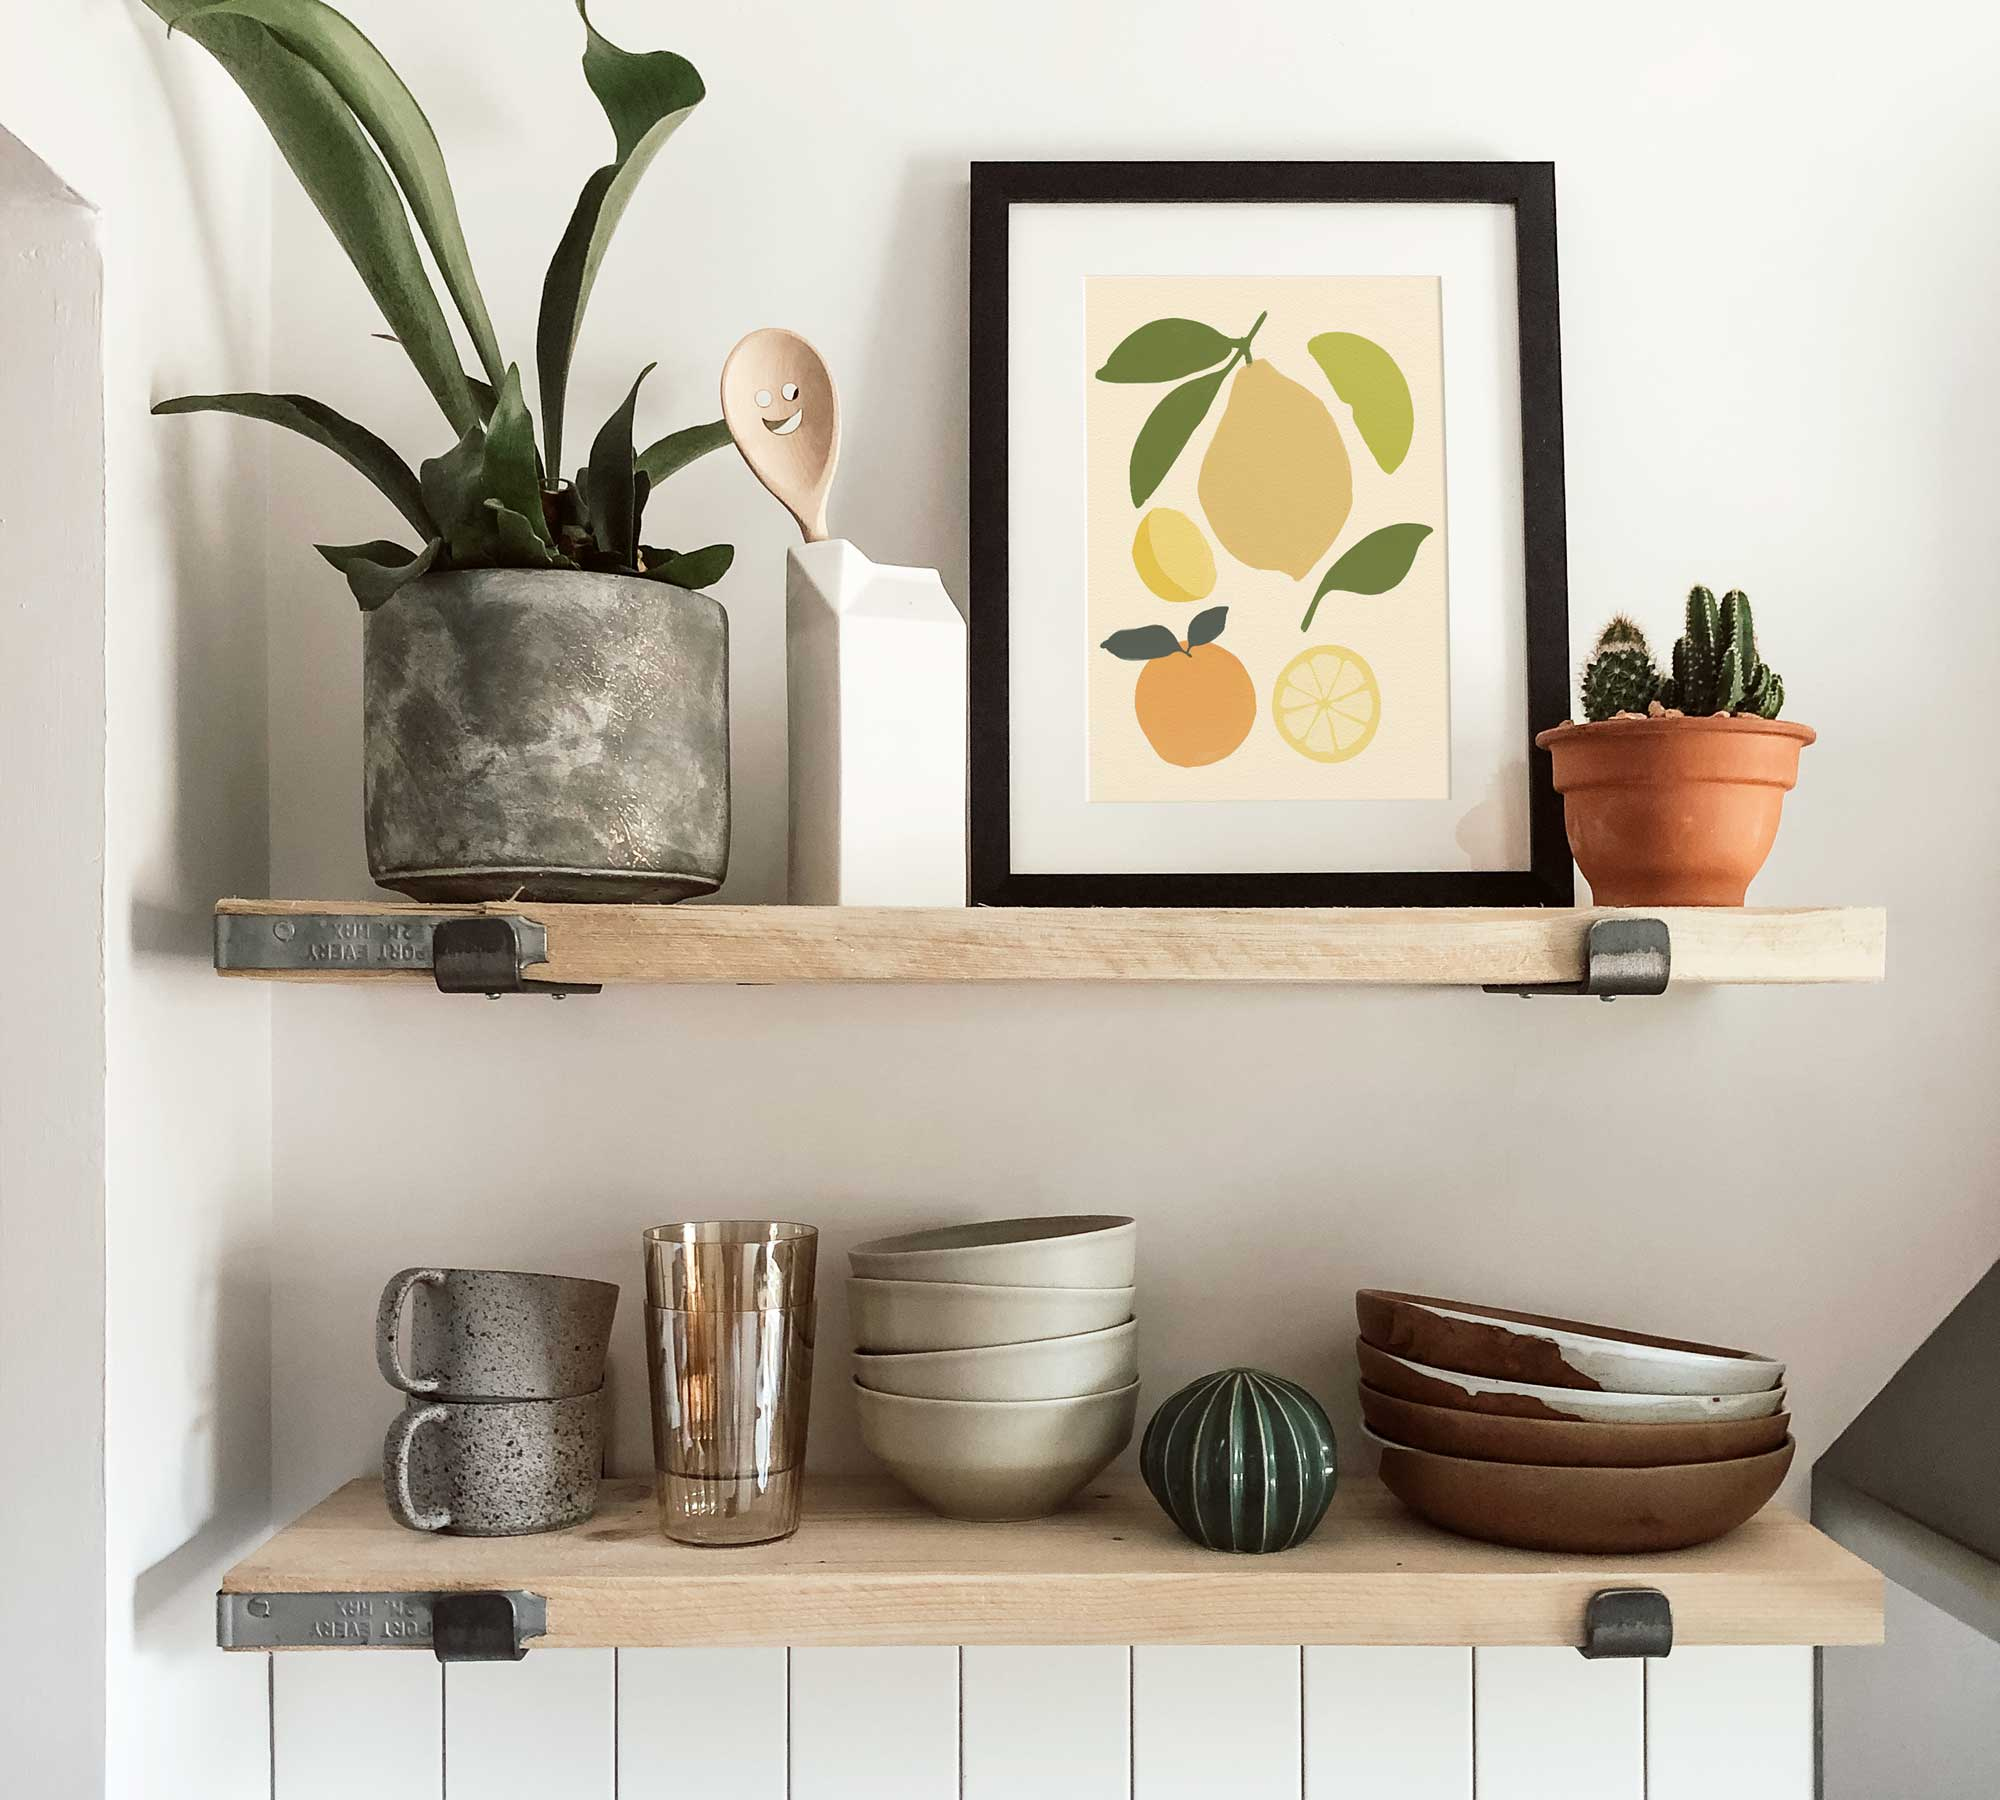 Fabulous Fruit Kitchen Wall Art Prints